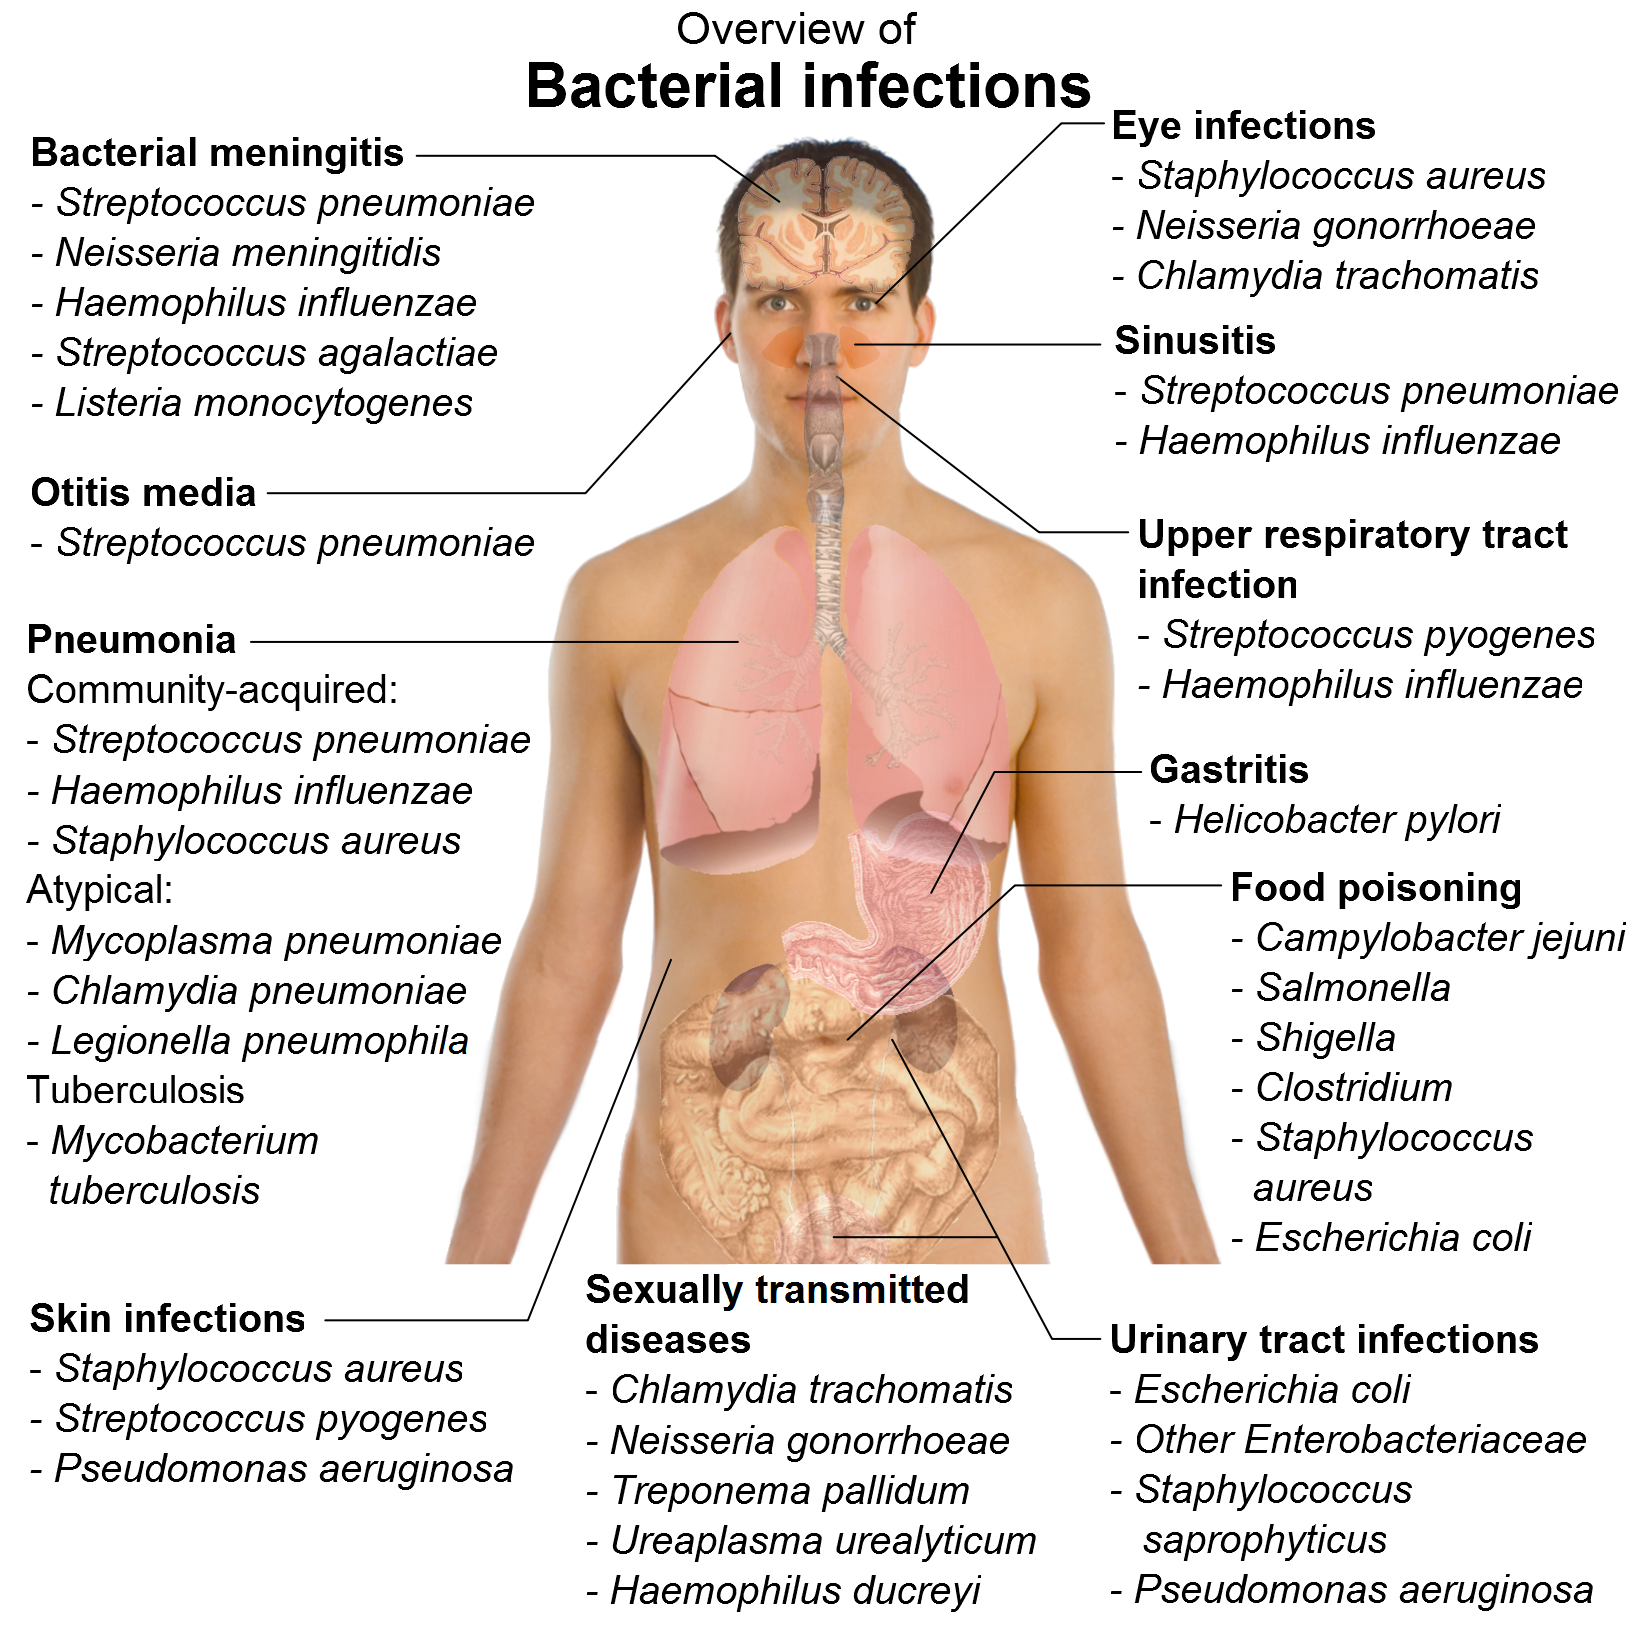 Bacterial infections Naturopathic Treatment For Bacterial Vaginosis   Some Natural And Holistic Cures For BV